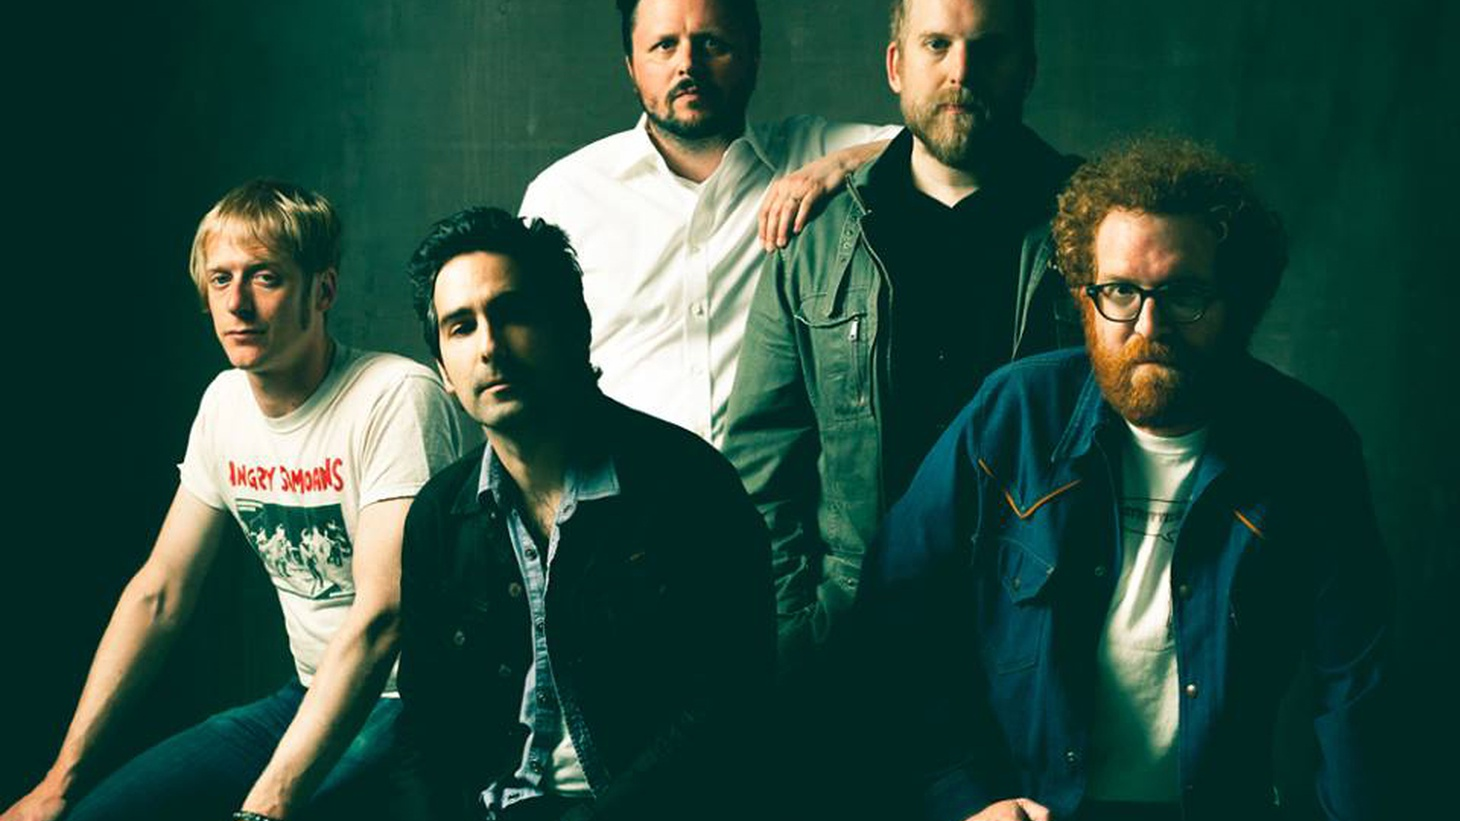 Portland-based band Blitzen Trapper has explored folk, country, psychedelia and more in previous releases, landing on a sunnier rock sound for their latest studio effort, All Across This Land.